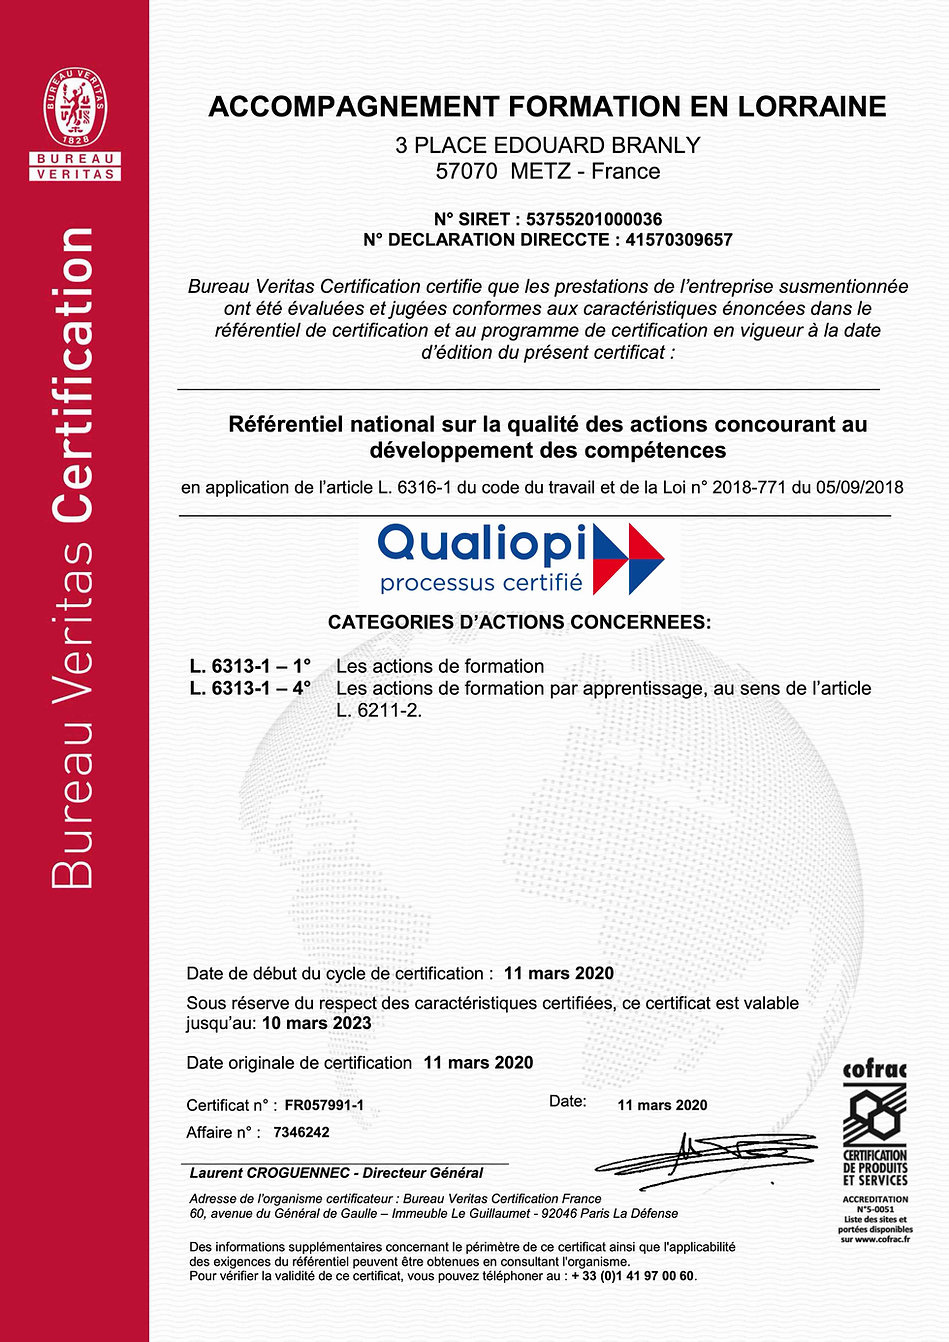 CERTIFICAT  QUALIOPI-ACCOMPAGNEMENT FORM